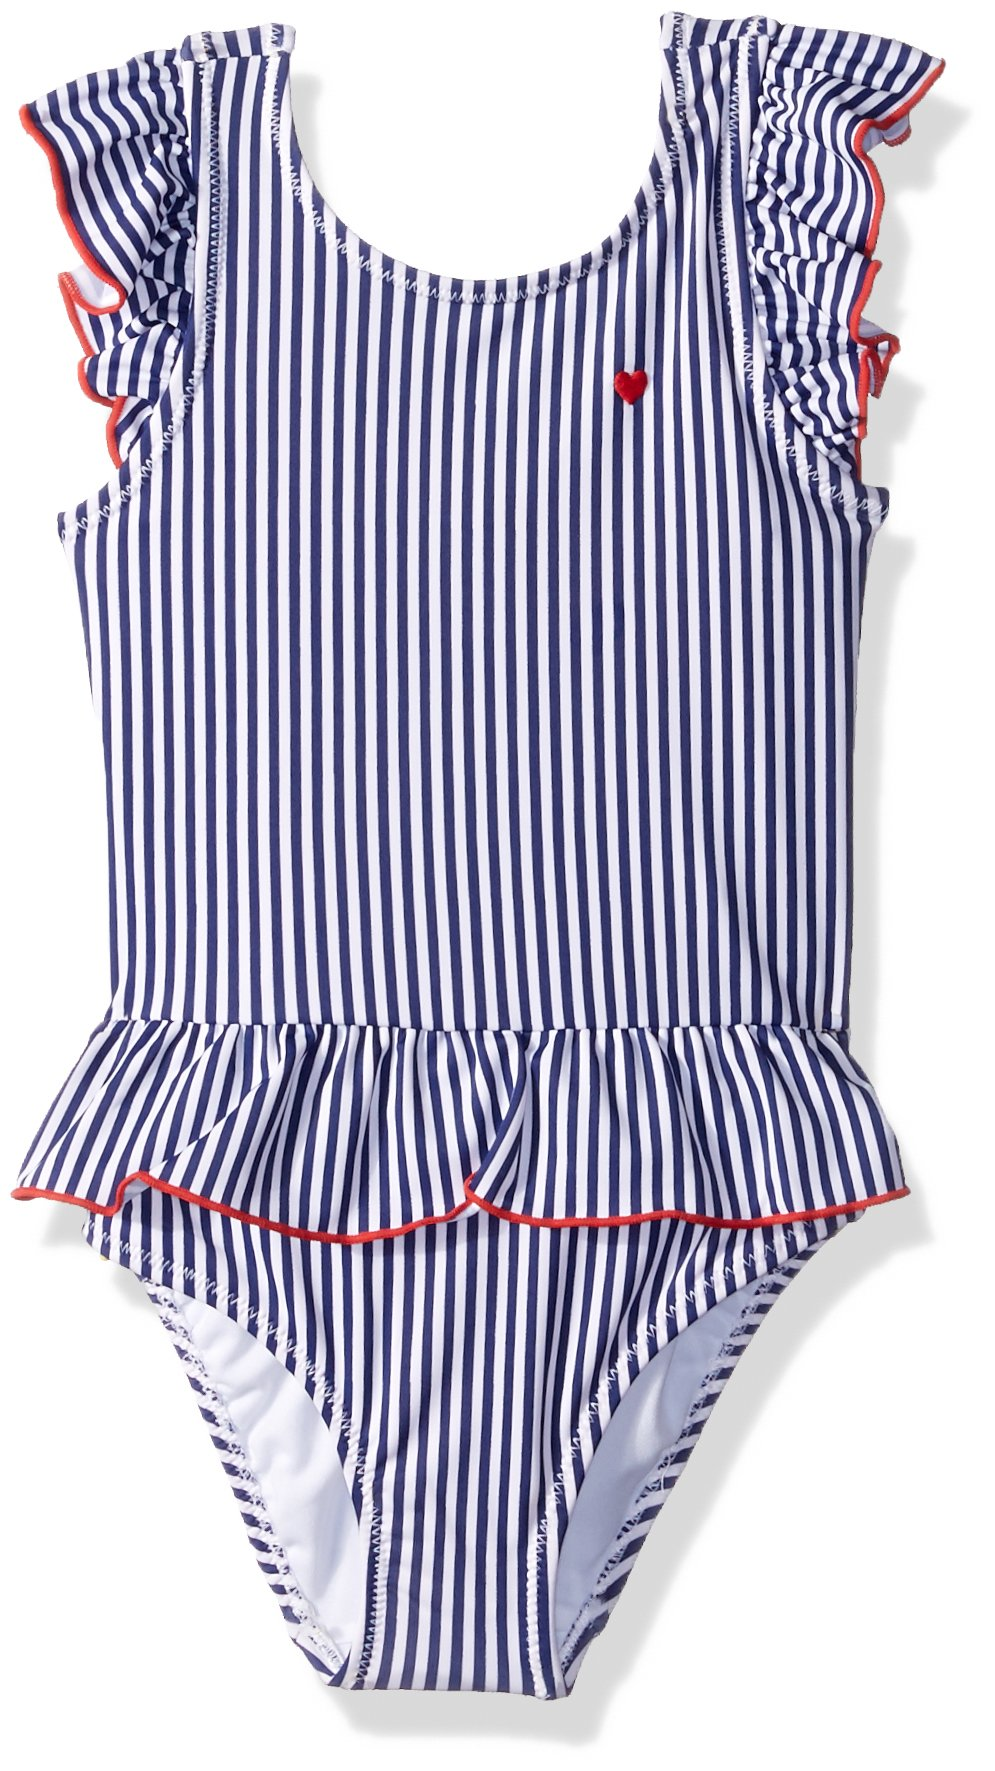 Carter's Girls' Toddler One Piece Swimsuit, Americana Stripe, 3T